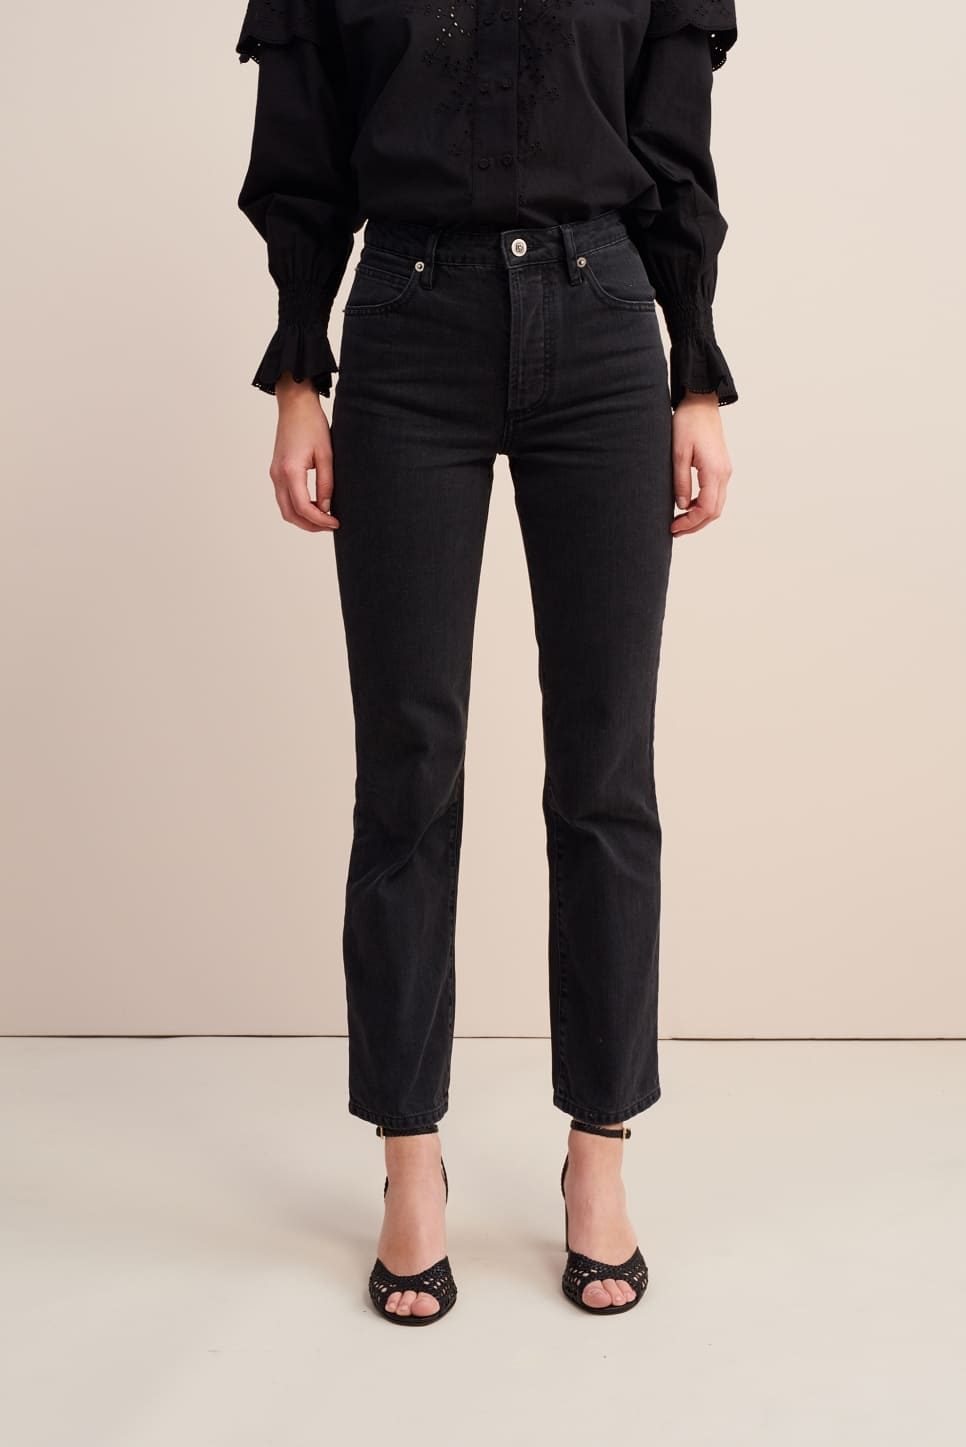 PIGALLE jeans